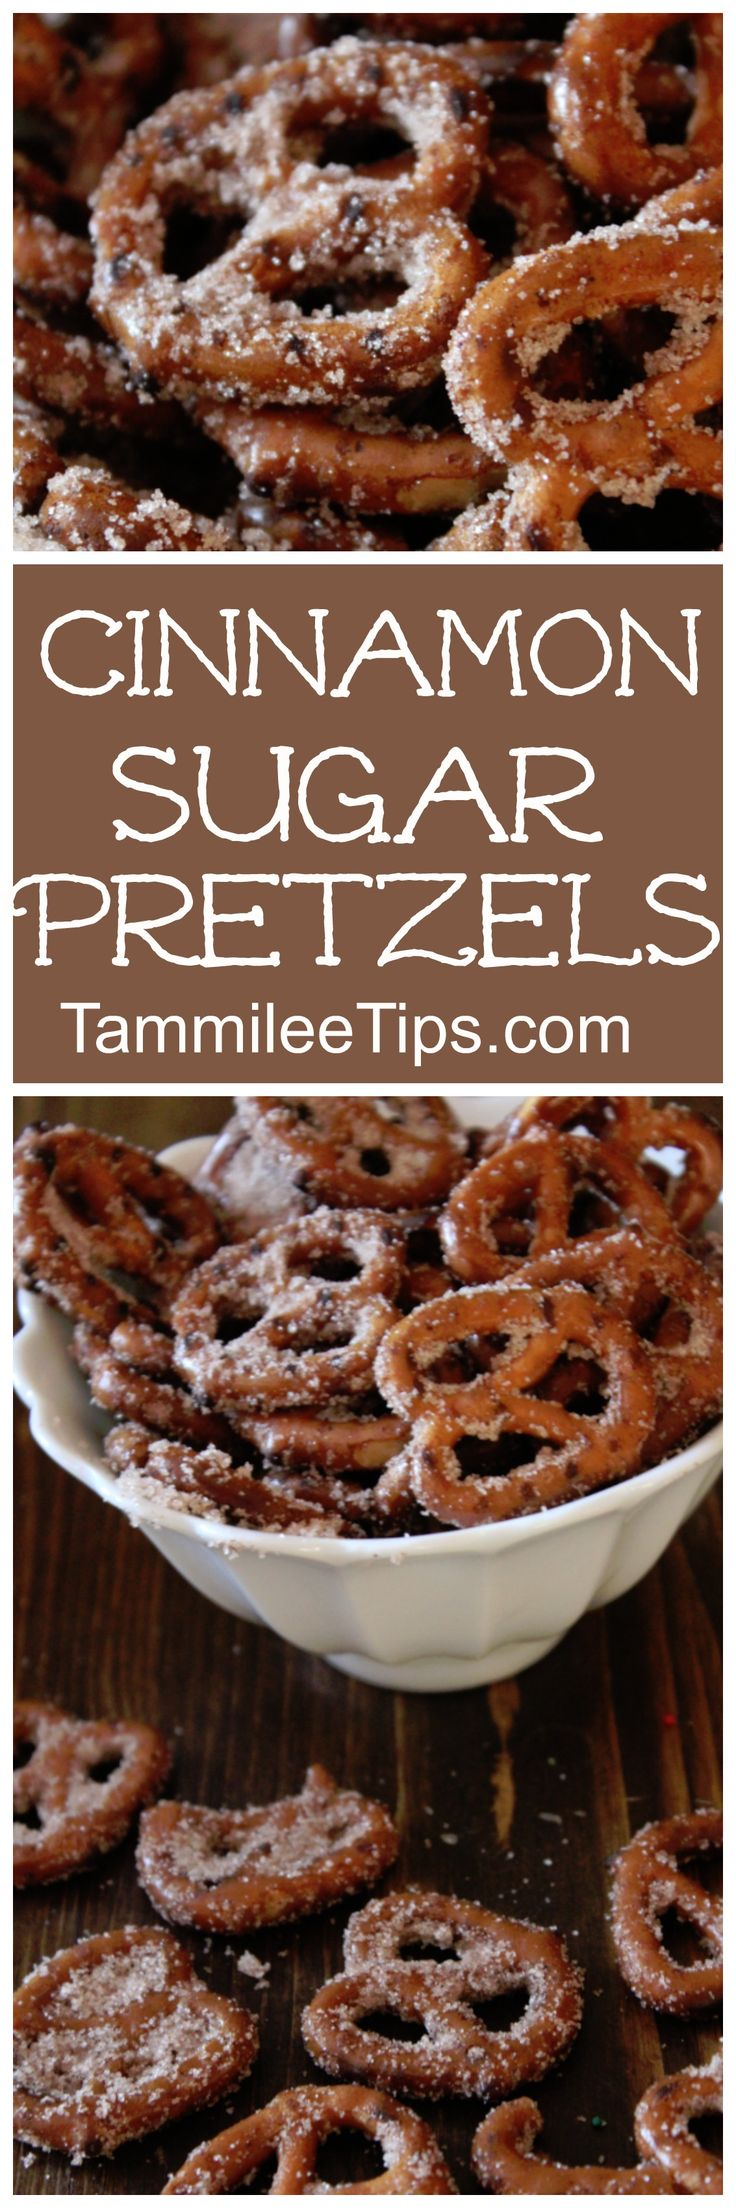 Super easy Cinnamon Sugar Pretzels! Perfect for DIY Homemade holiday gifts! This s